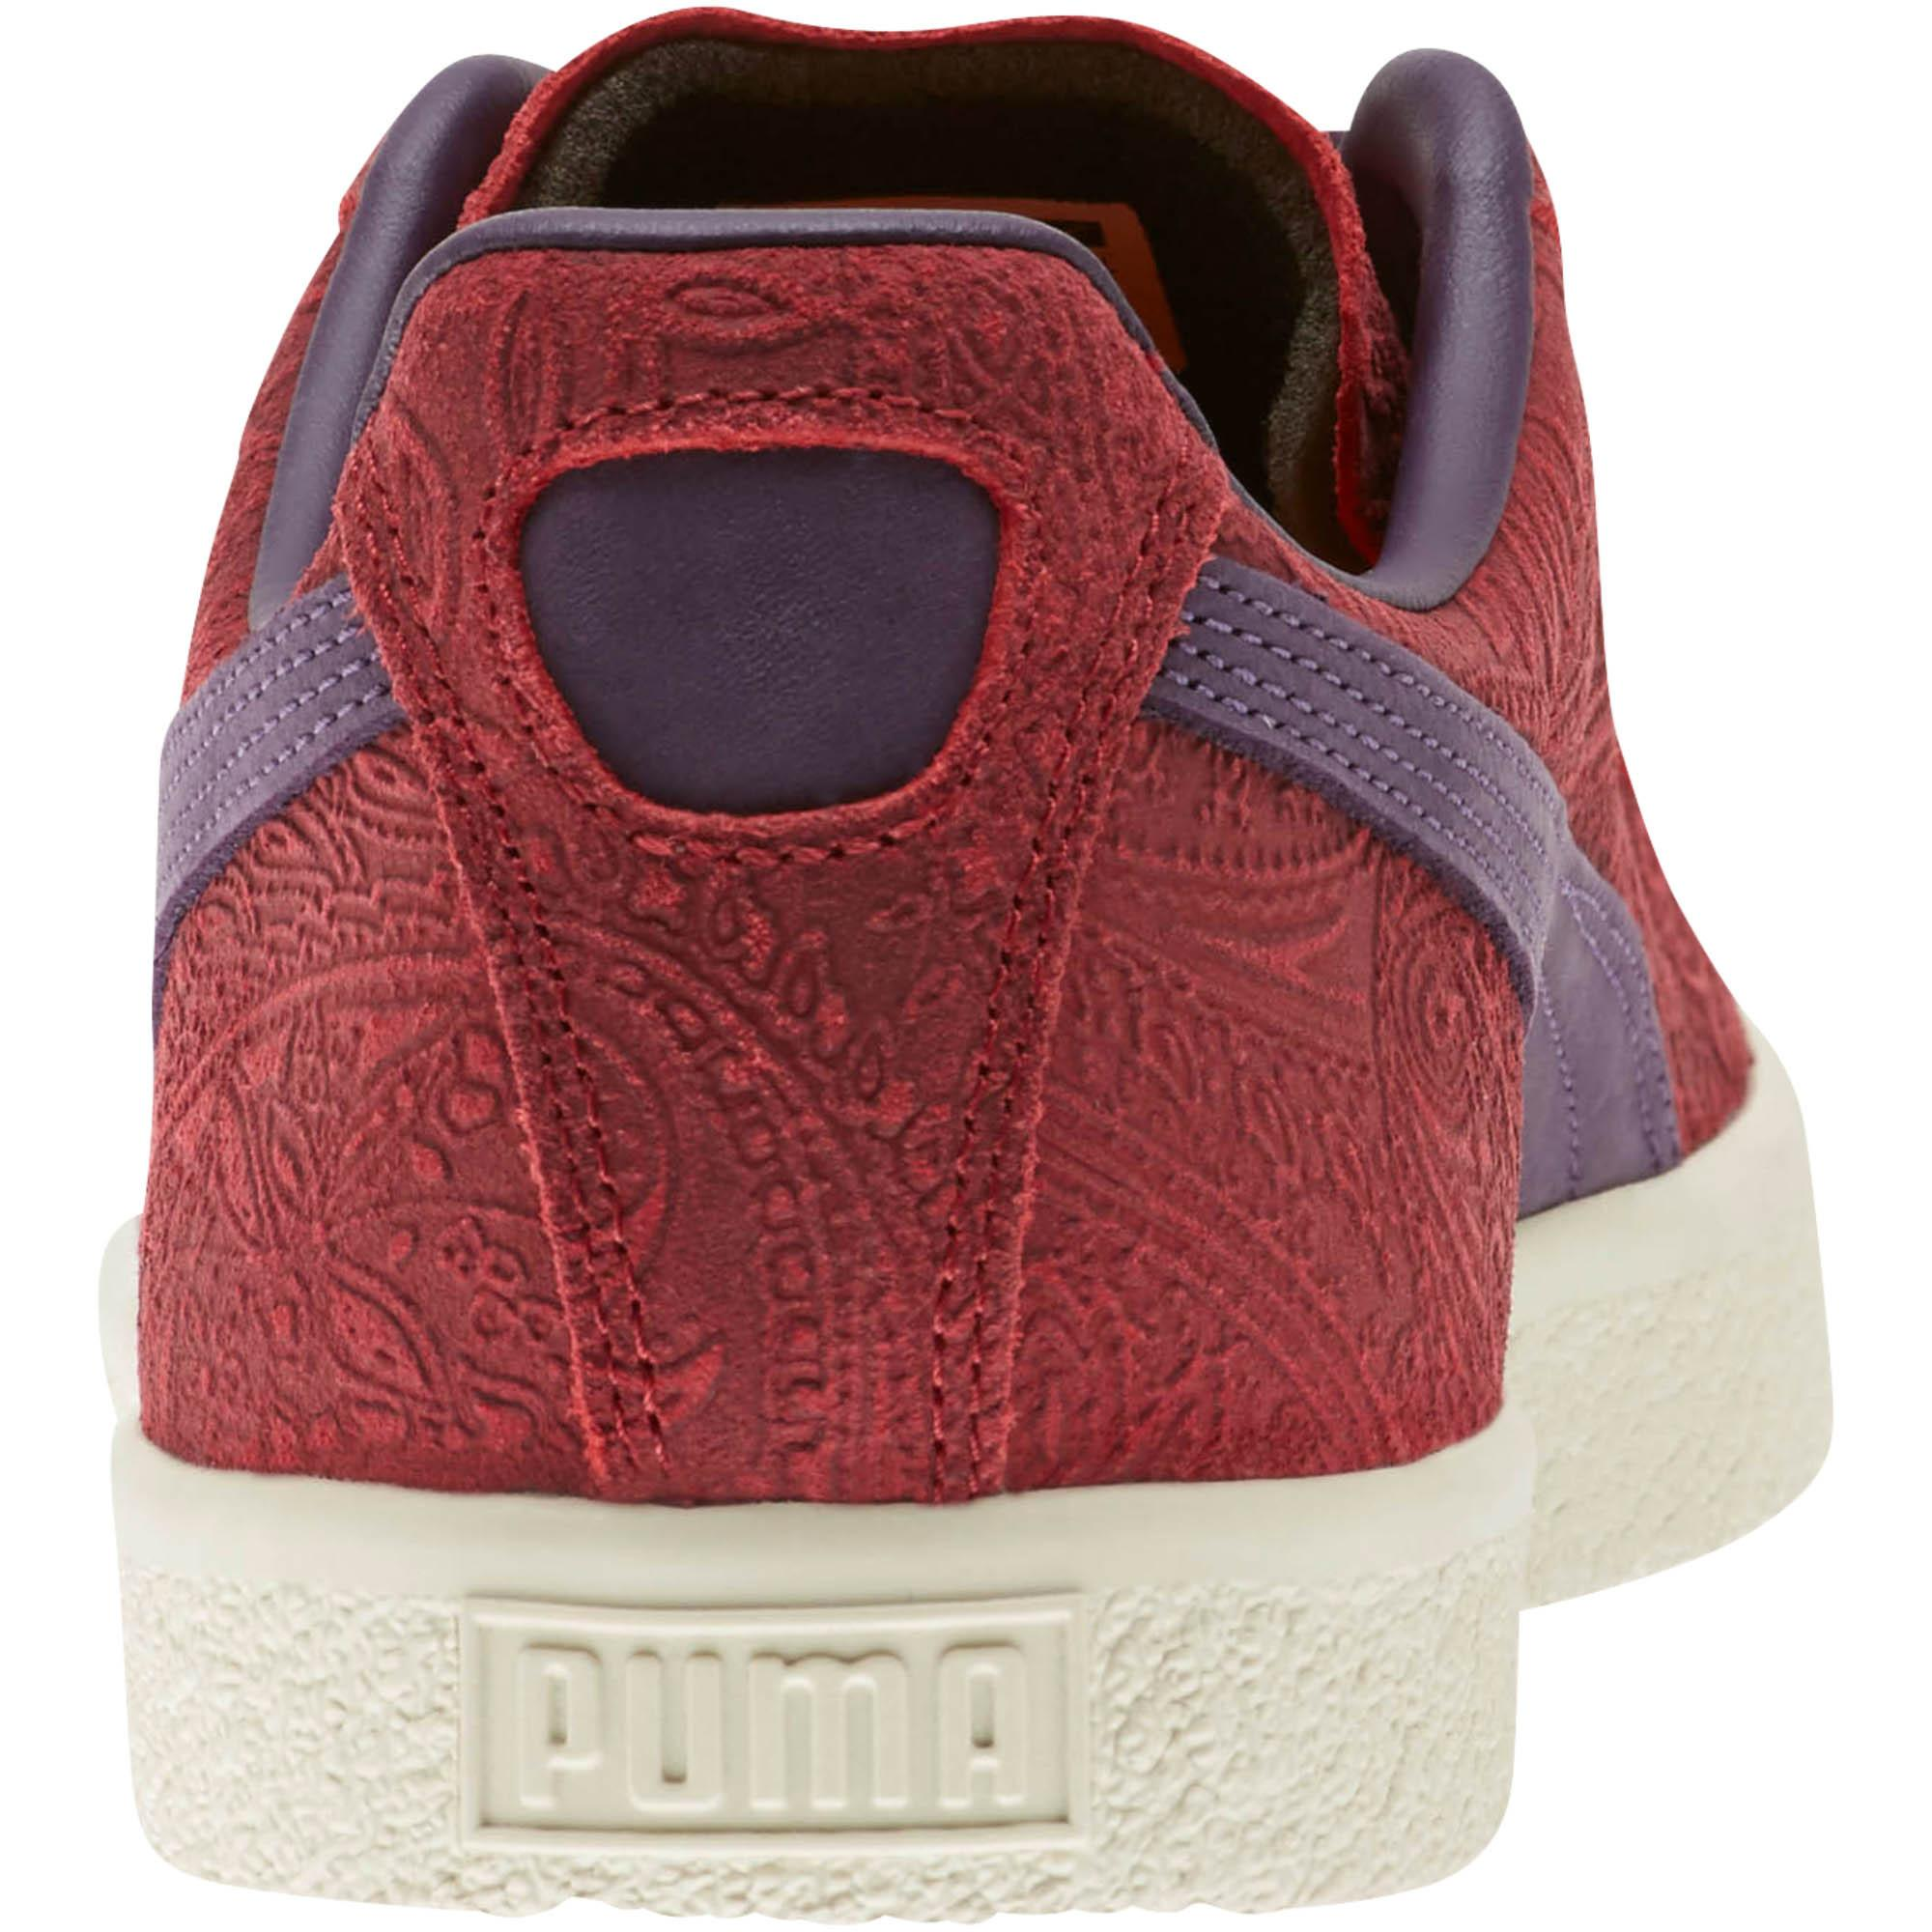 a539f7ceedd PUMA - Red Clyde Paisley Sneakers for Men - Lyst. View fullscreen